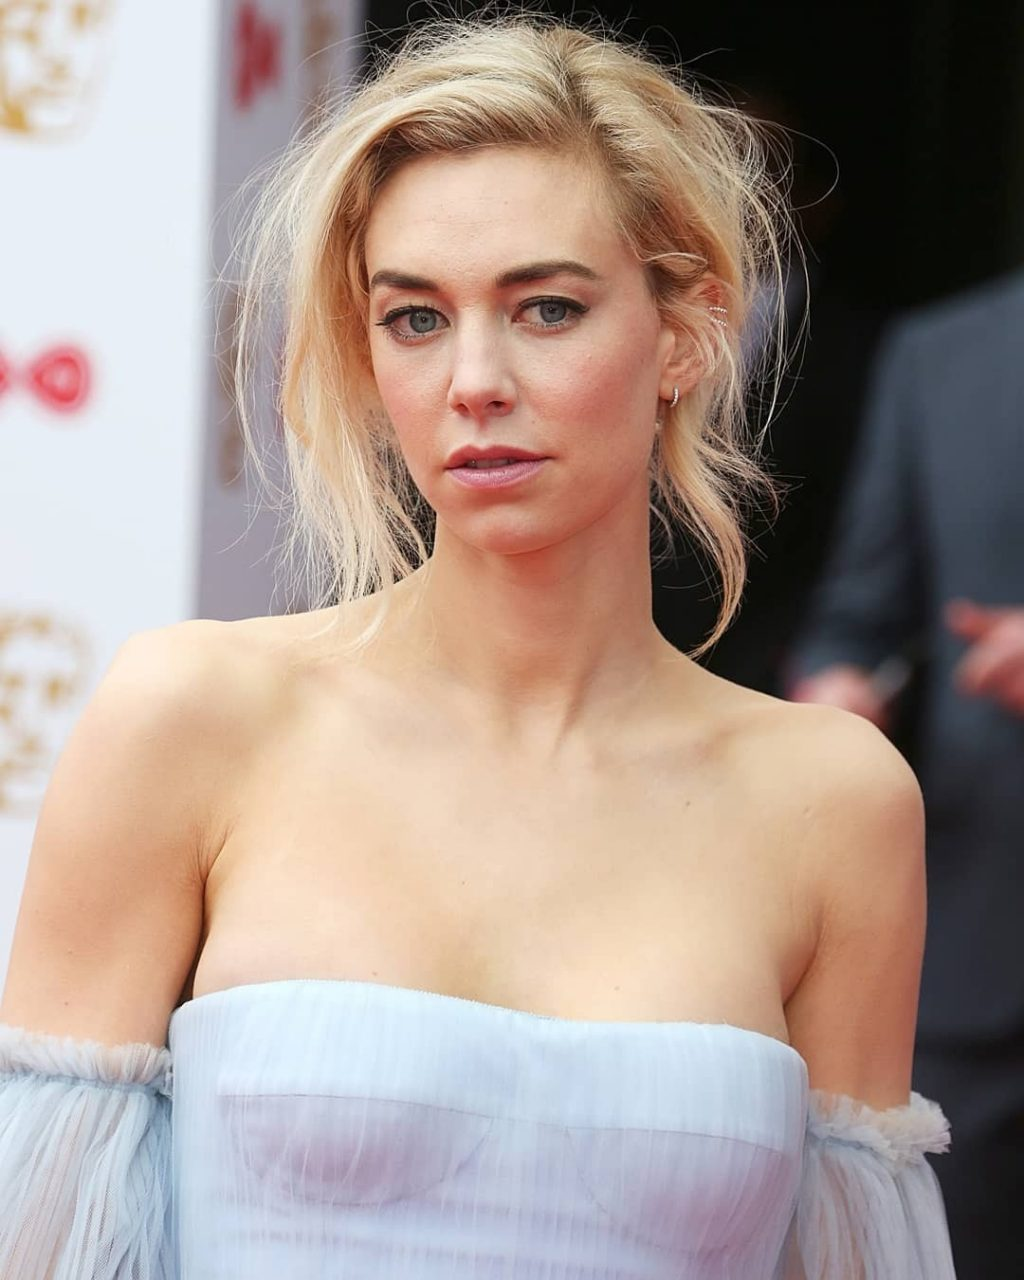 XXX Vanessa Kirby nudes (97 photo), Tits, Fappening, Boobs, lingerie 2006